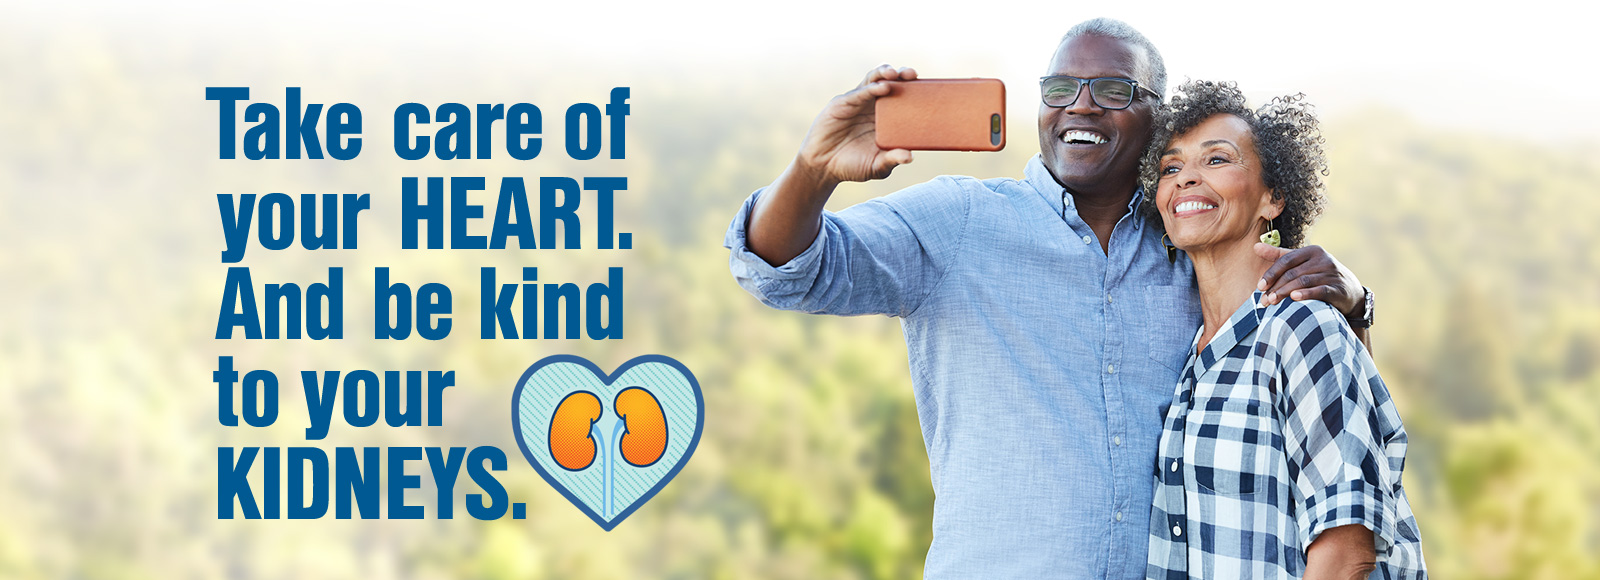 Take care of your HEART. And be kind to your KIDNEYS.